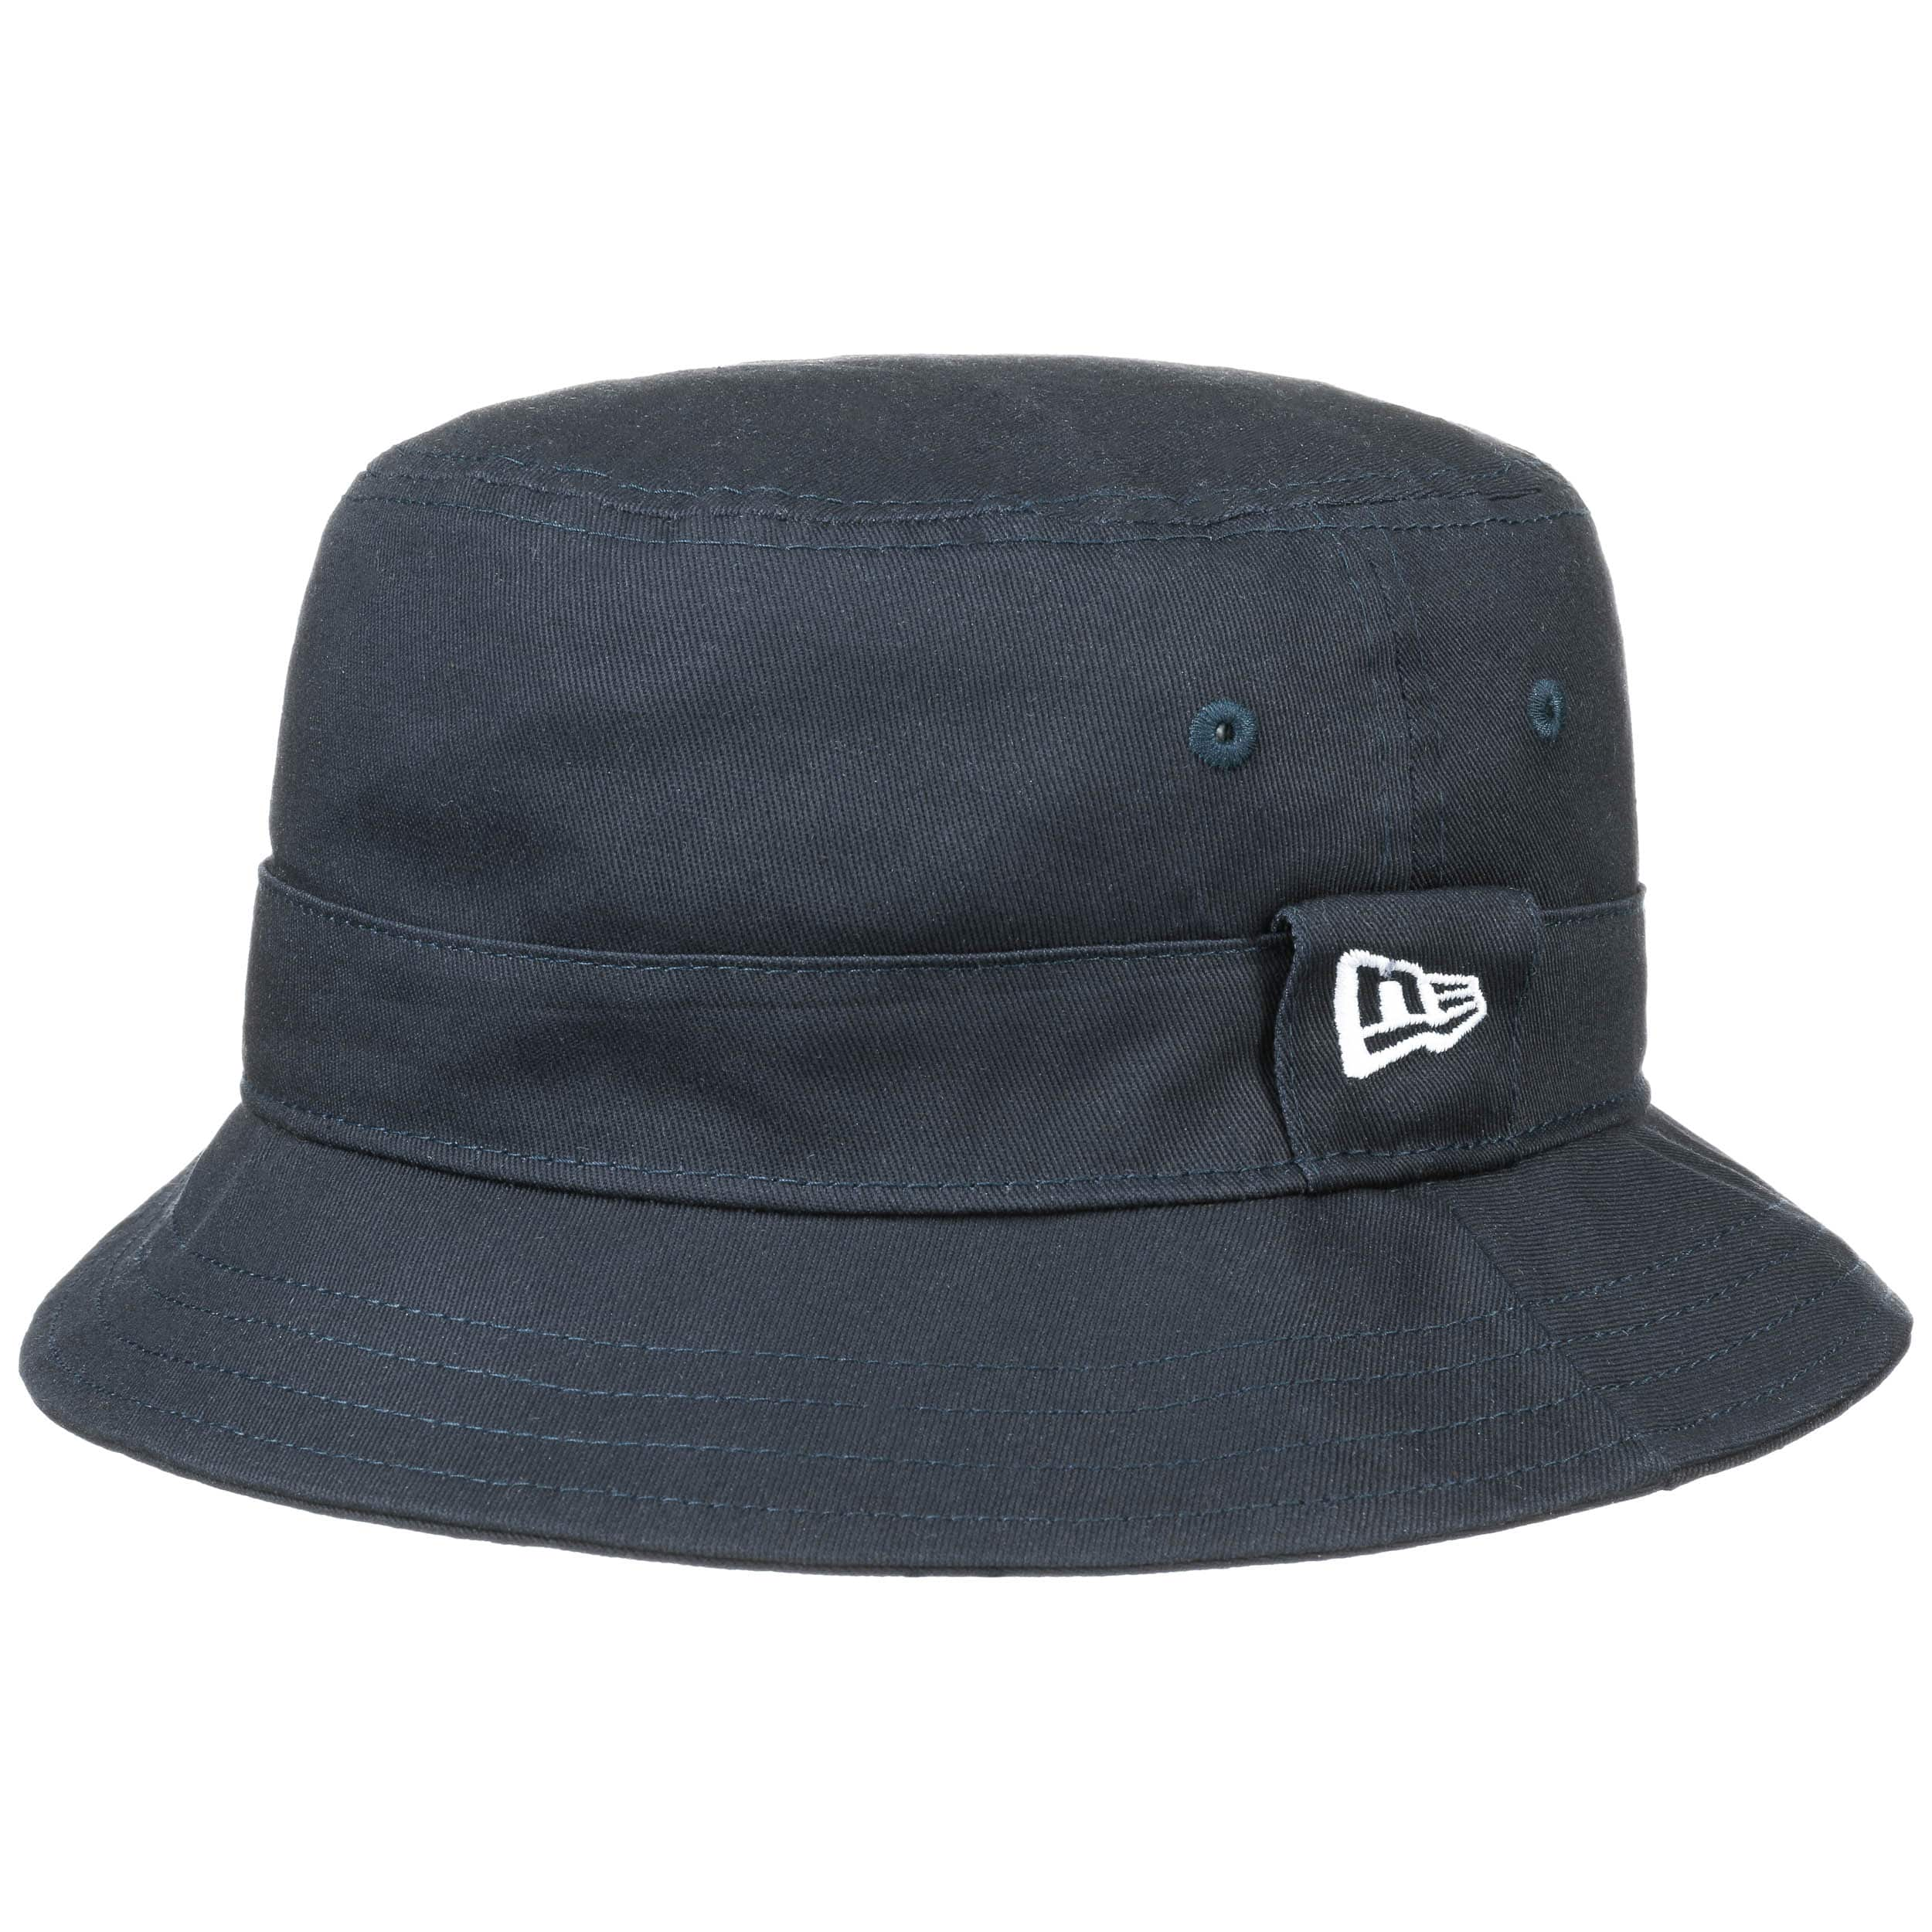 dc21d27d11bc6 ... Essential Bucket Fishing Hat by New Era - navy 2 ...